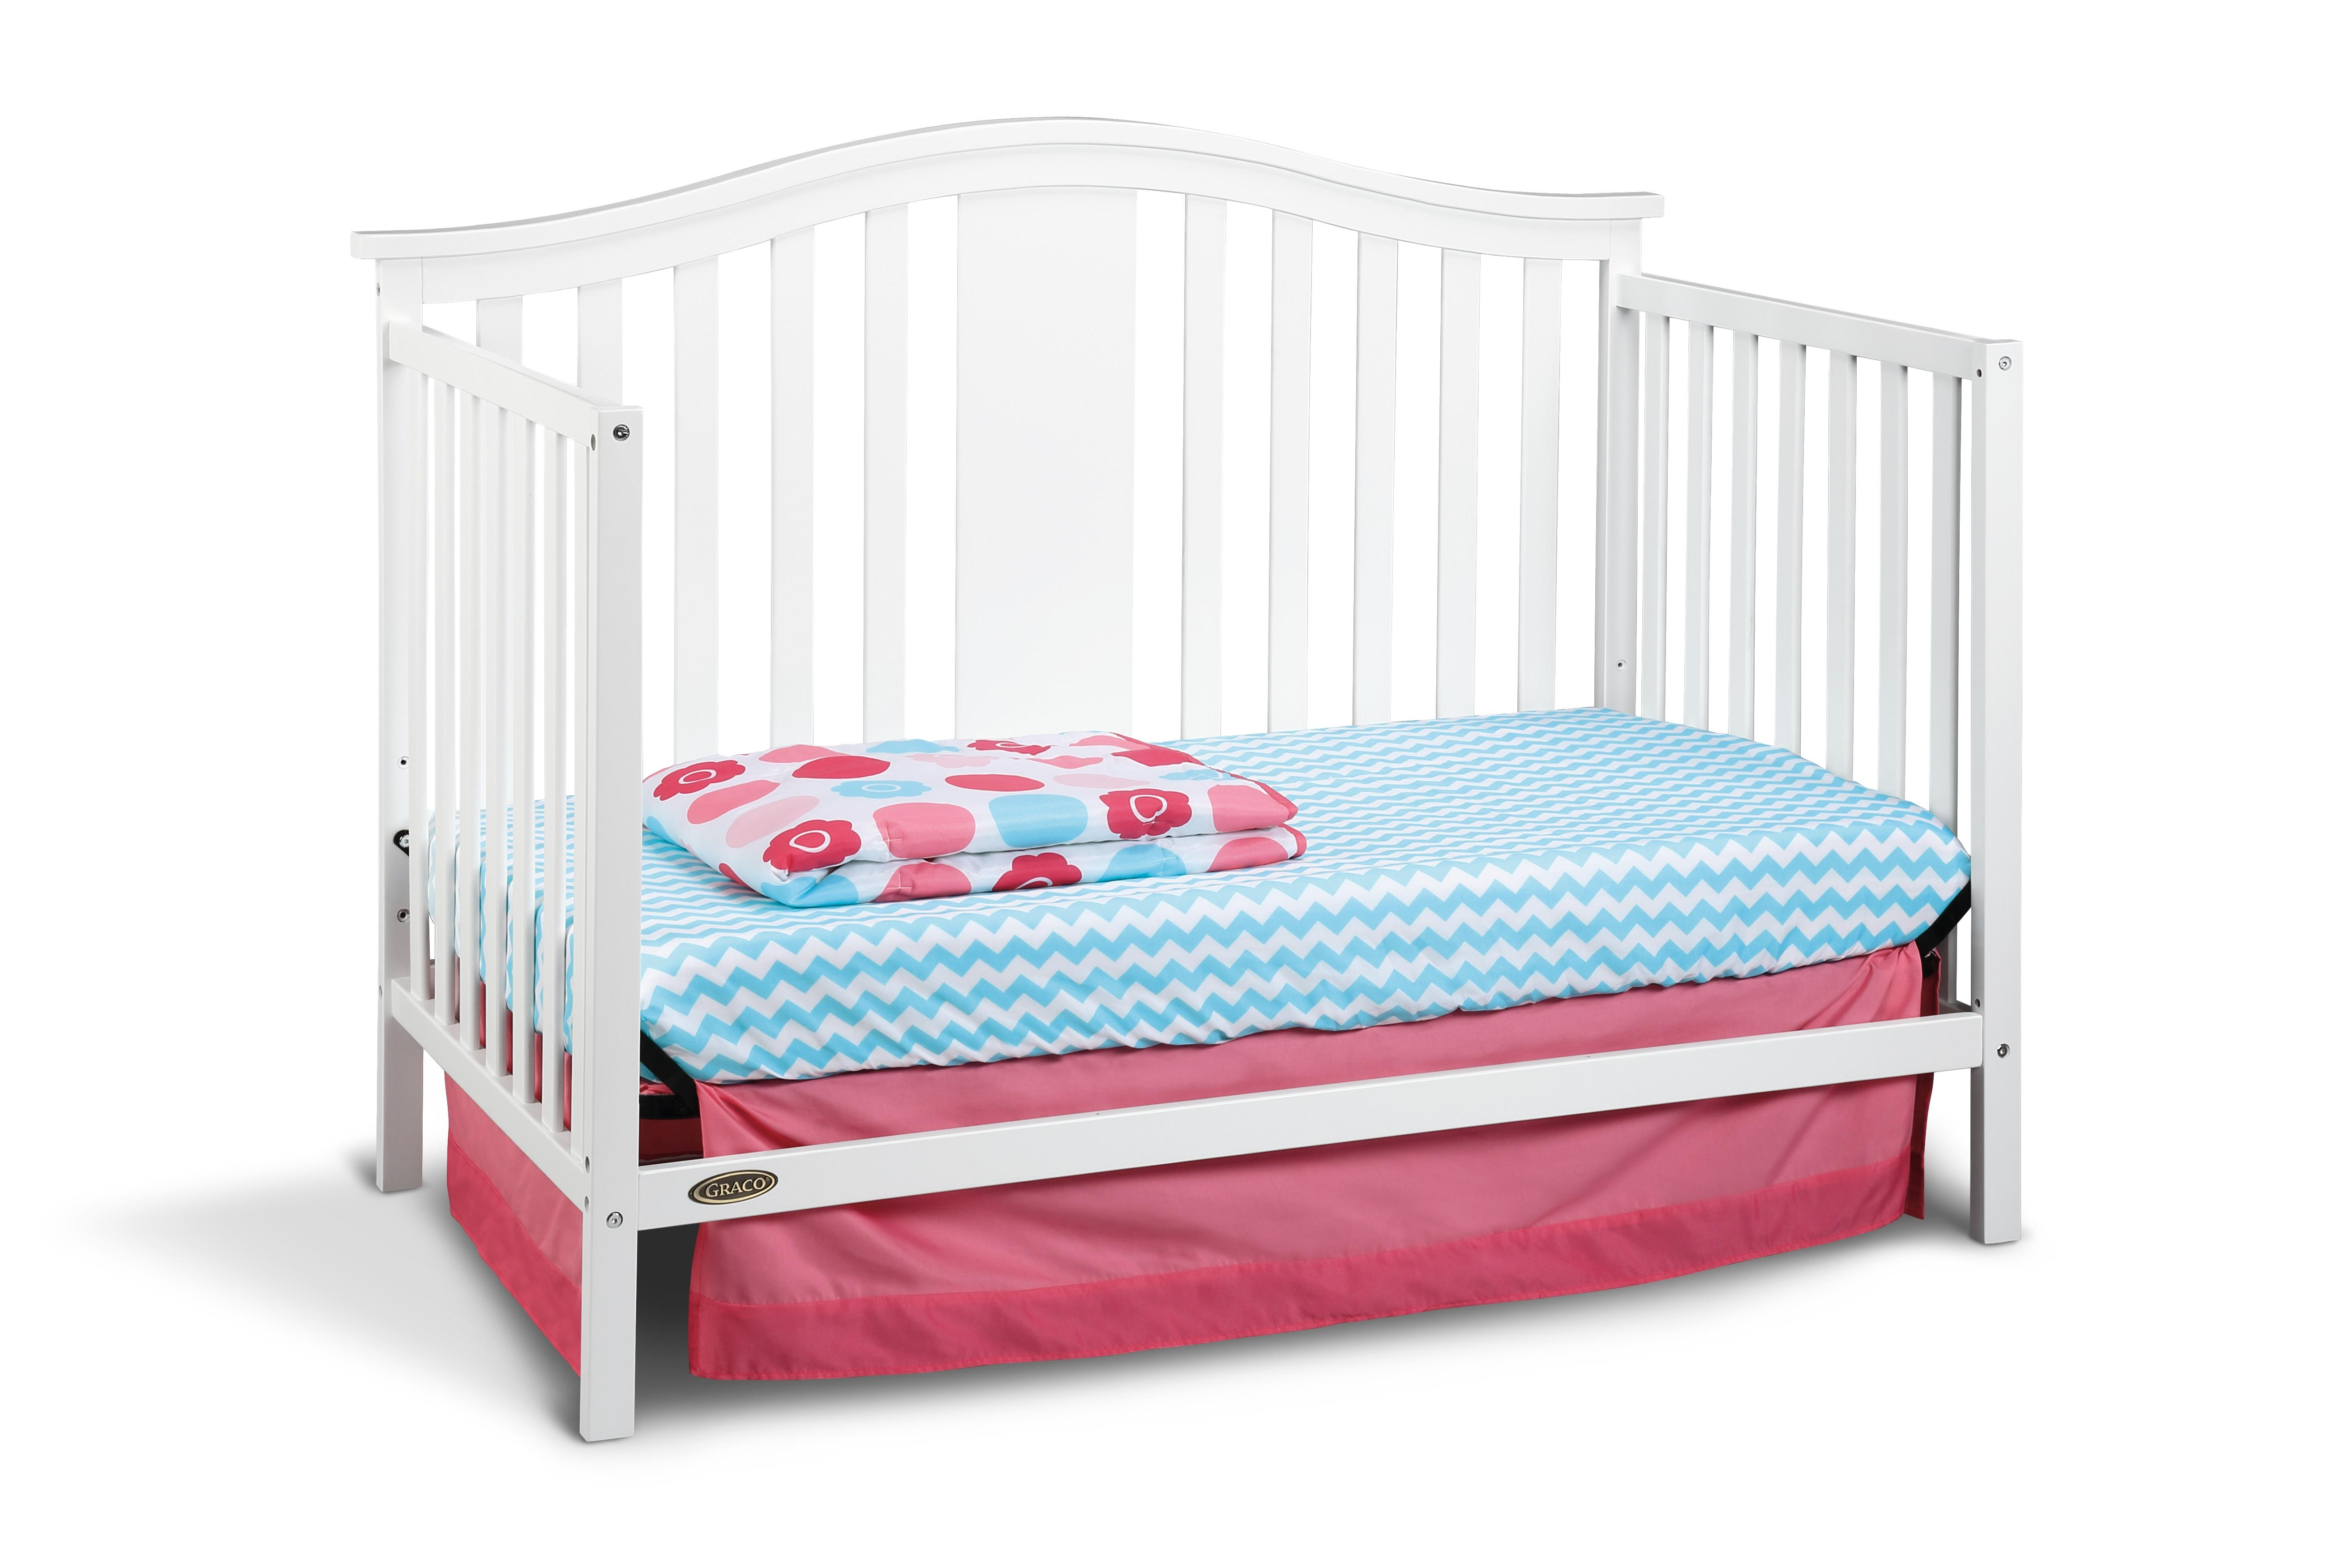 graco 4 in 1 crib instructions toddler bed